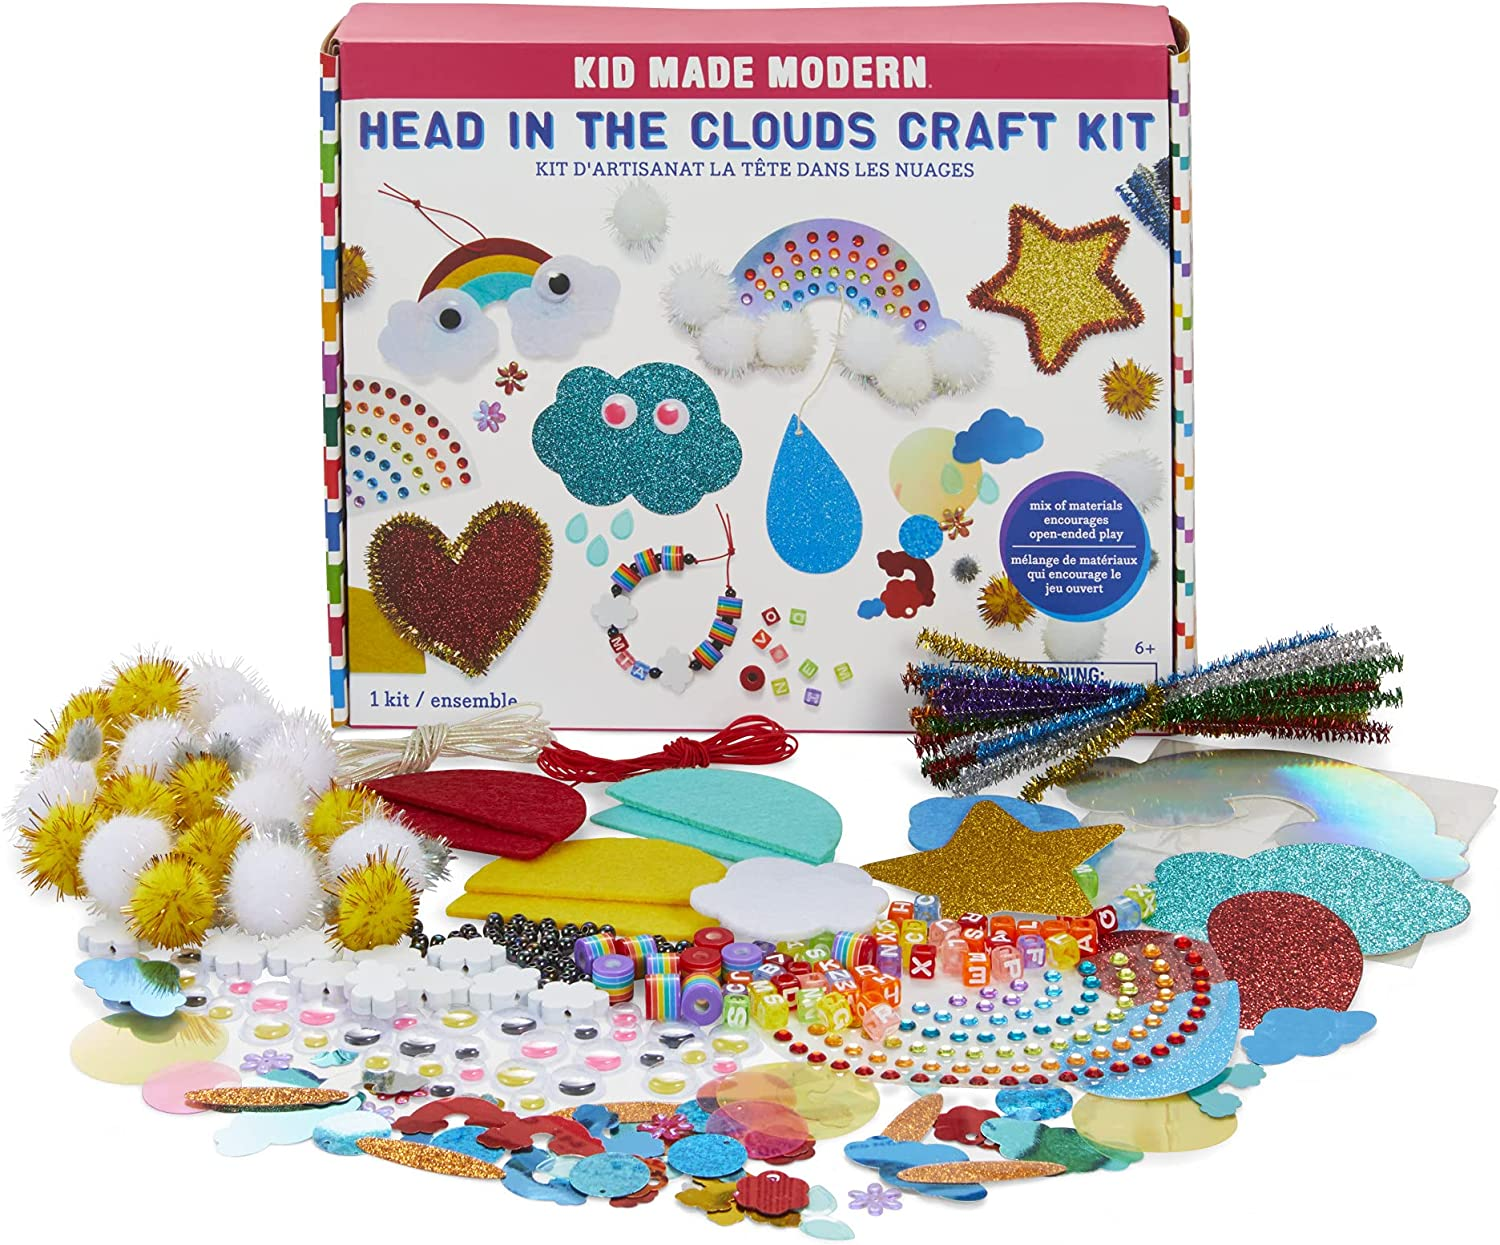 Kid Made Modern Arts Crafts store Head in Weekly update - 300 Craft Clouds The Kit